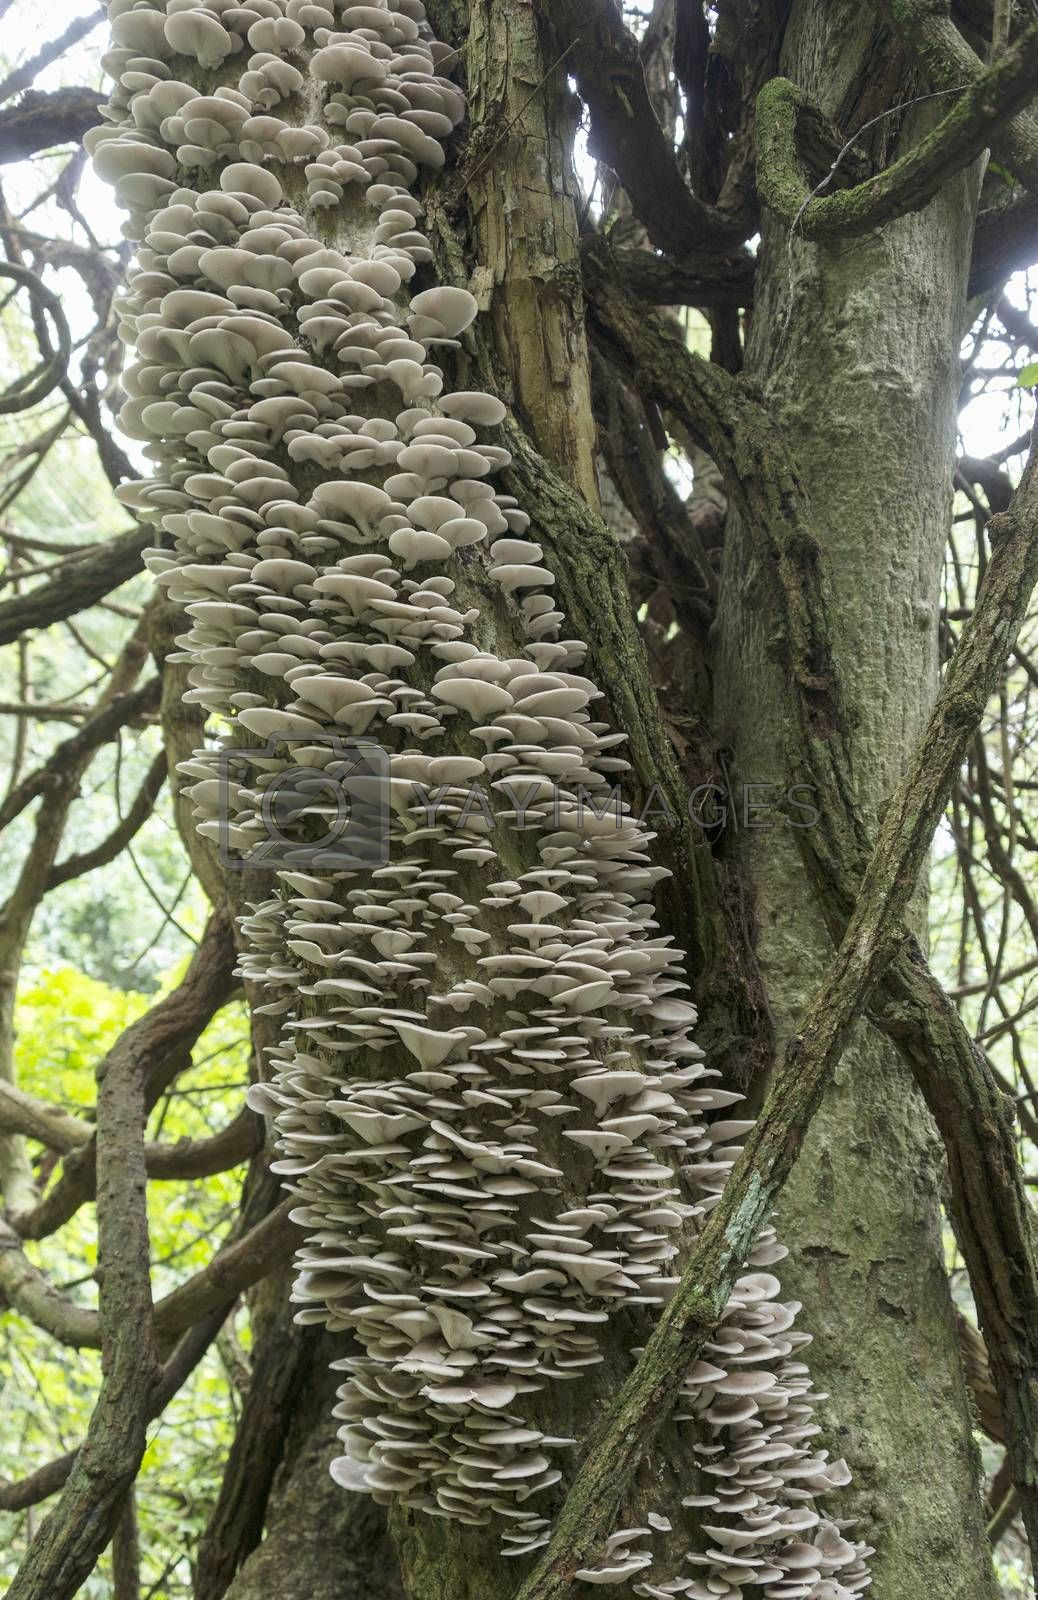 Royalty free image of tree full of mushrooms and fungi by compuinfoto